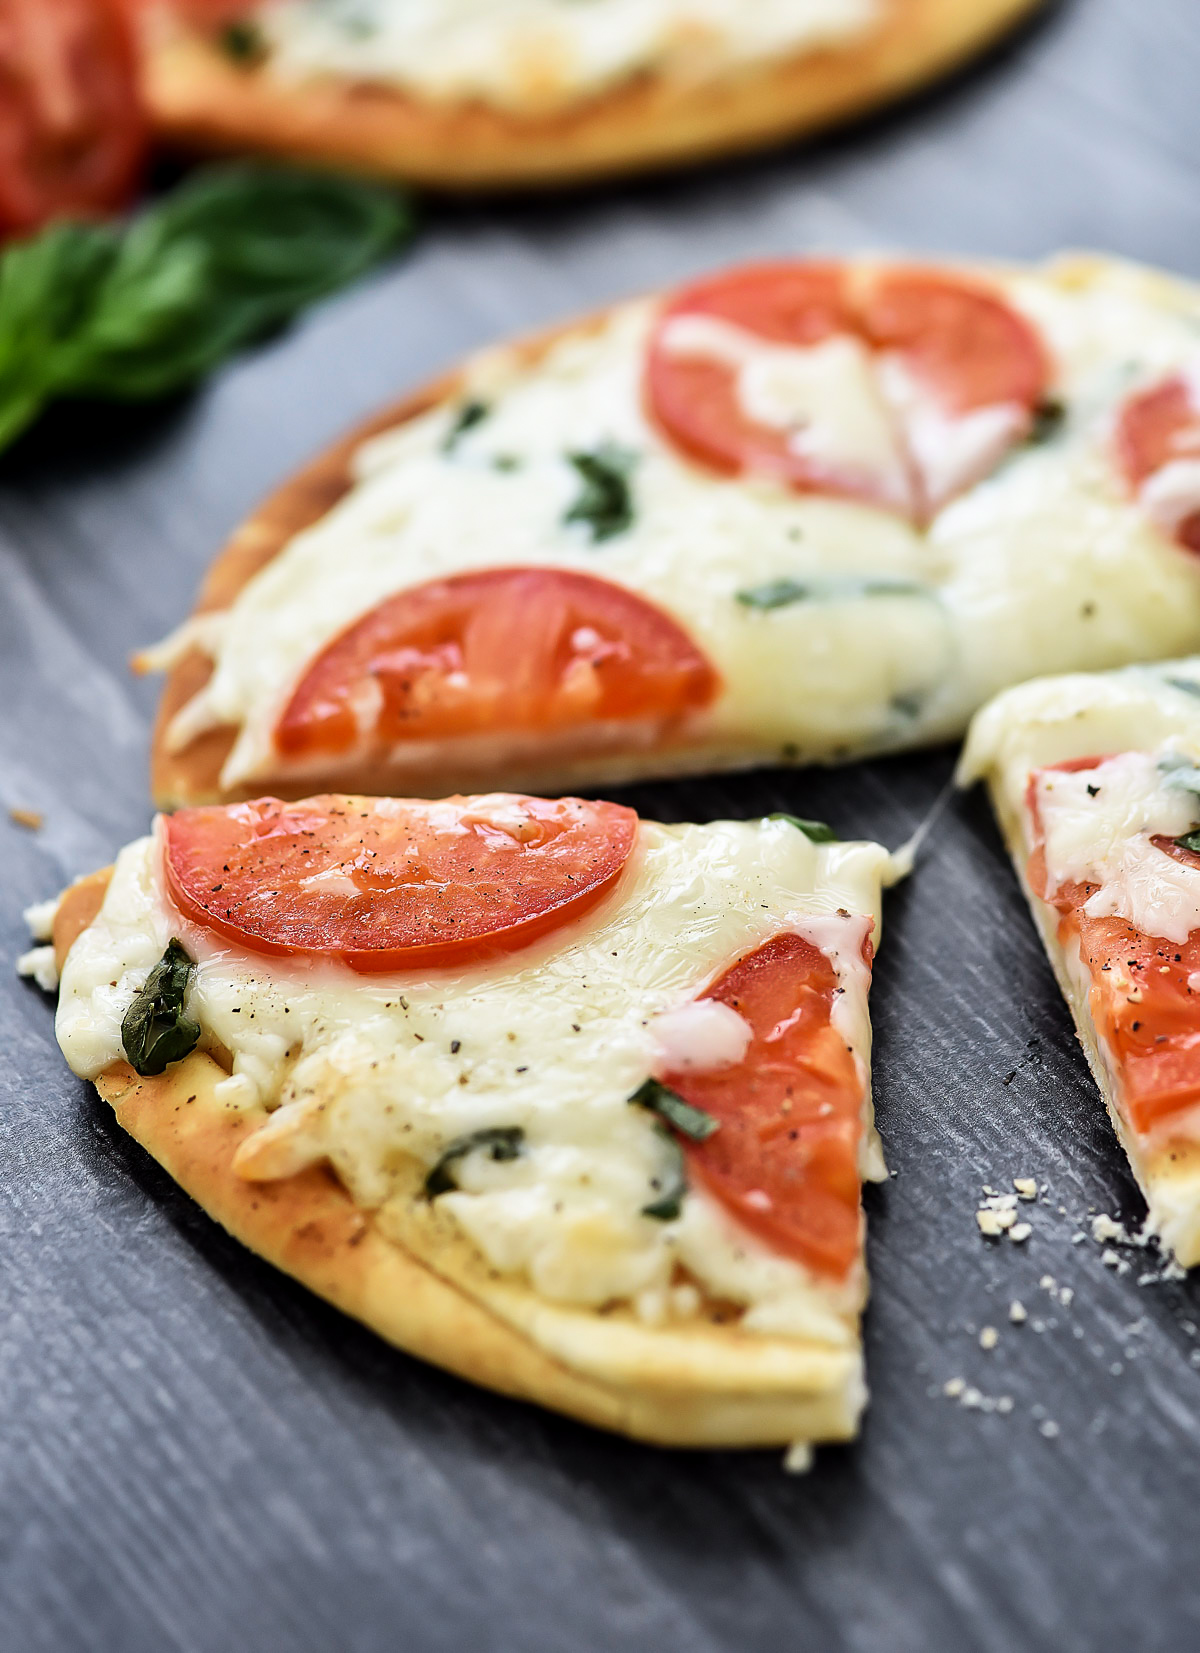 Margherita Flatbread Pizza is topped with Mozzarella and Parmesan cheese, sliced tomatoes and fresh basil over a flatbread crust. Life-in-the-Lofthouse.com